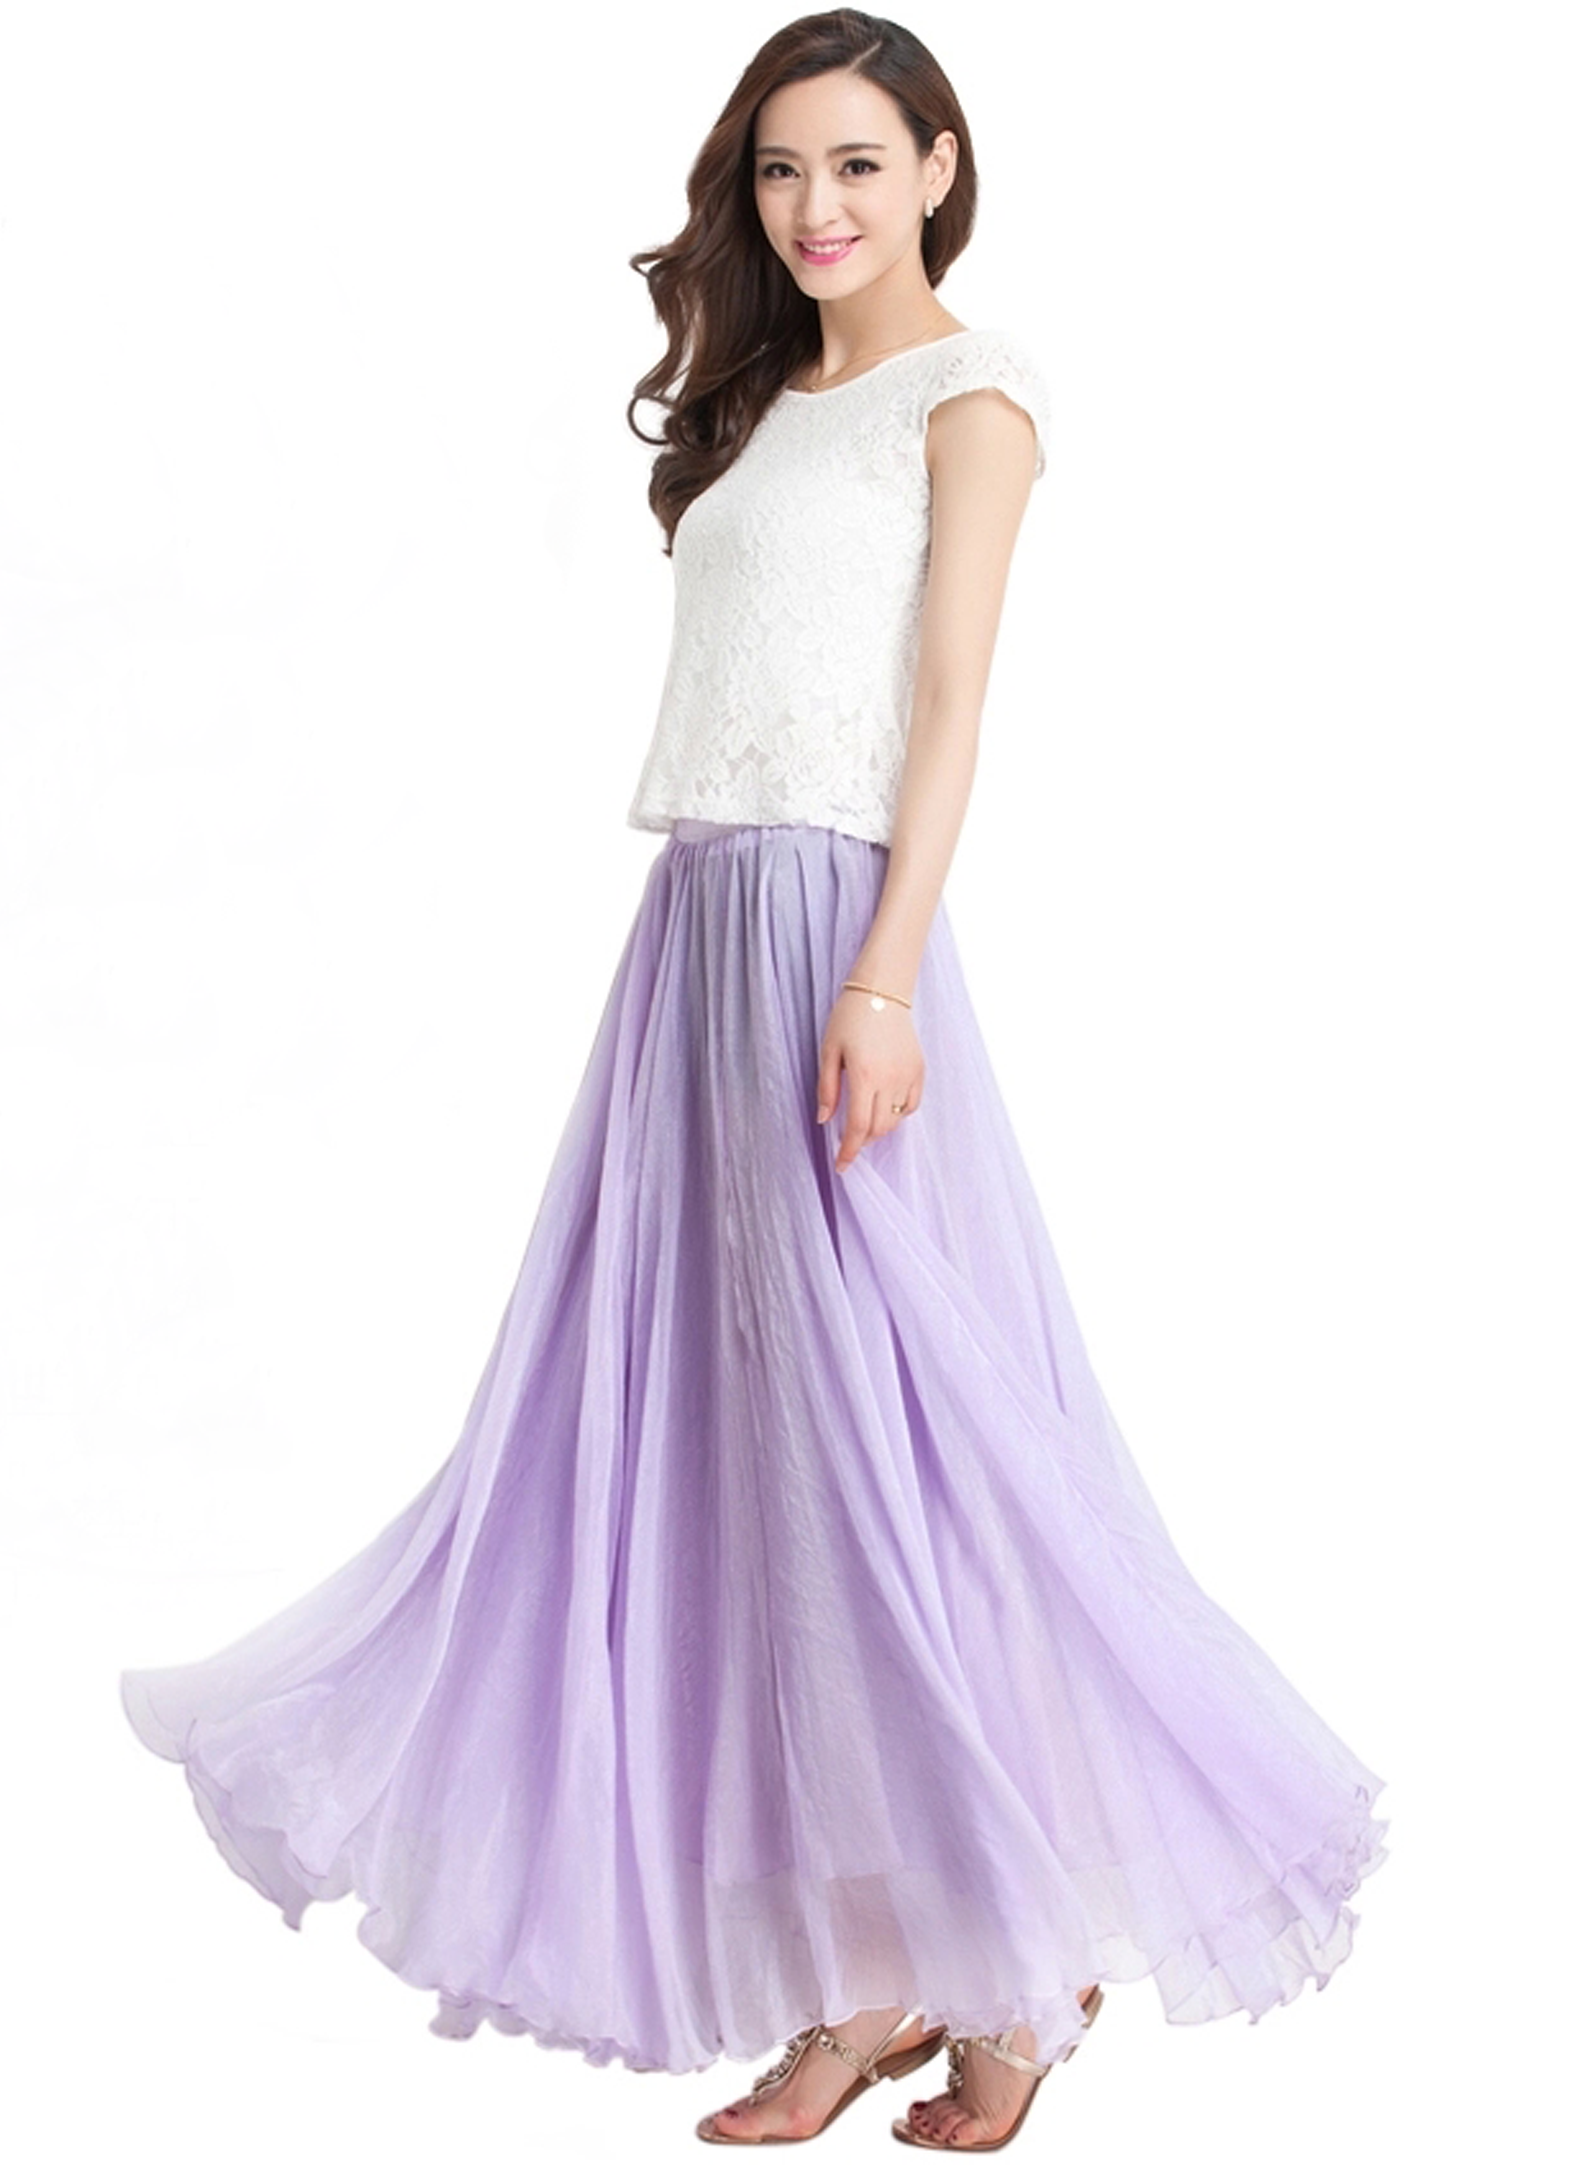 Lavender long chiffon skirt maxi skirt ladies silk chiffon dress lavender long chiffon skirt maxi skirt ladies silk chiffon dress plus sizes bridesmaid sundress beach skirt ombrellifo Image collections